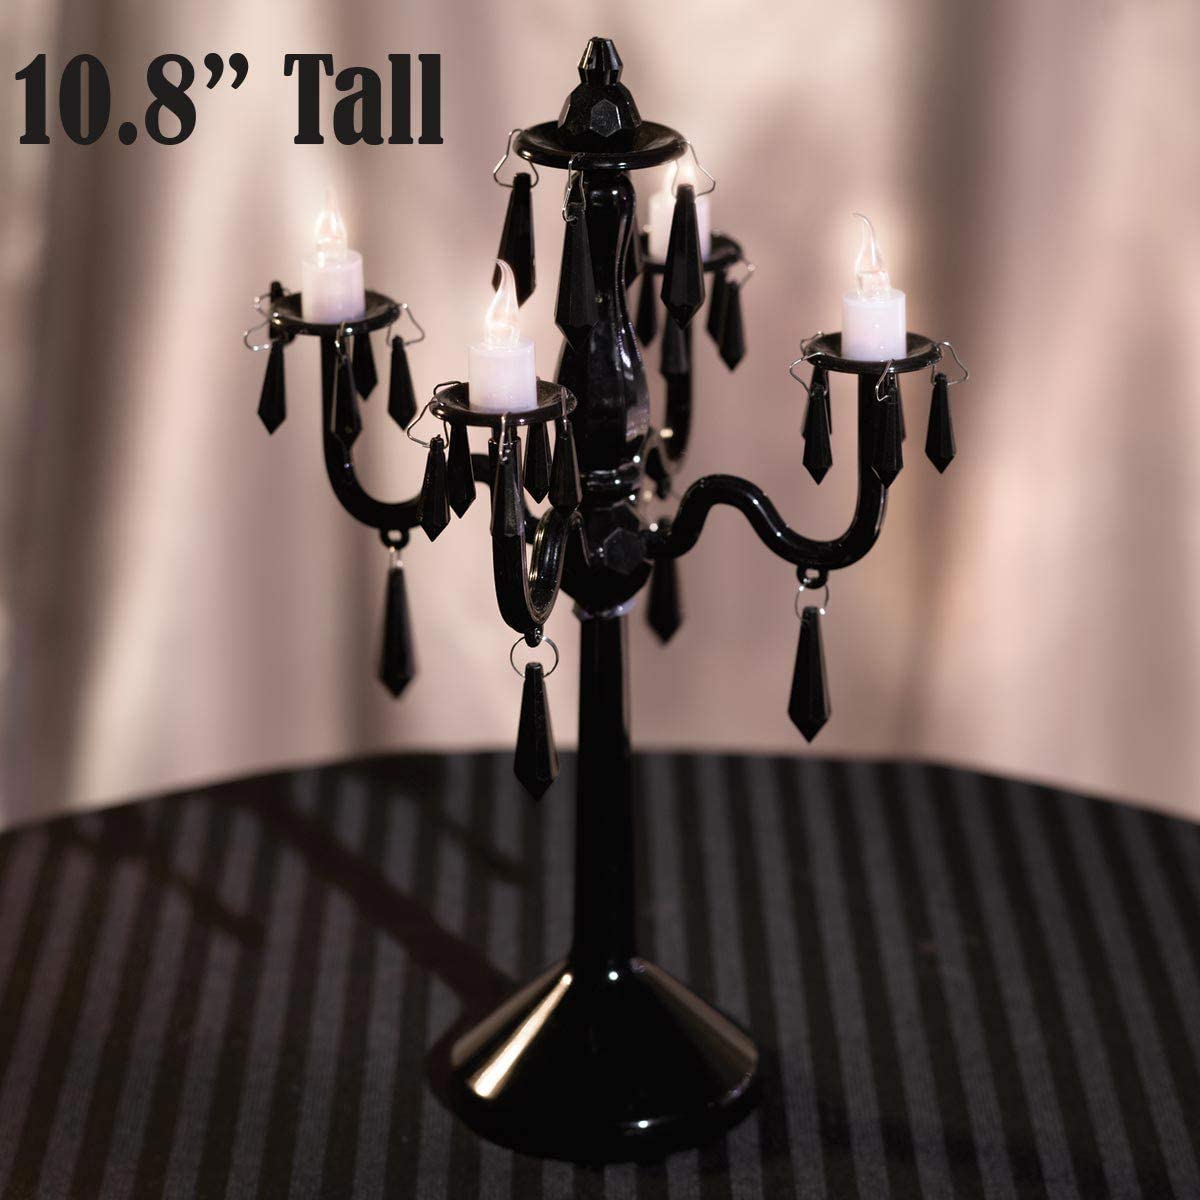 Anderson S Plastic Chandelier Centerpiece 10 8 Inches High 4 Candelabra Arms 4 Battery Operated Led Candles Black Health Personal Care